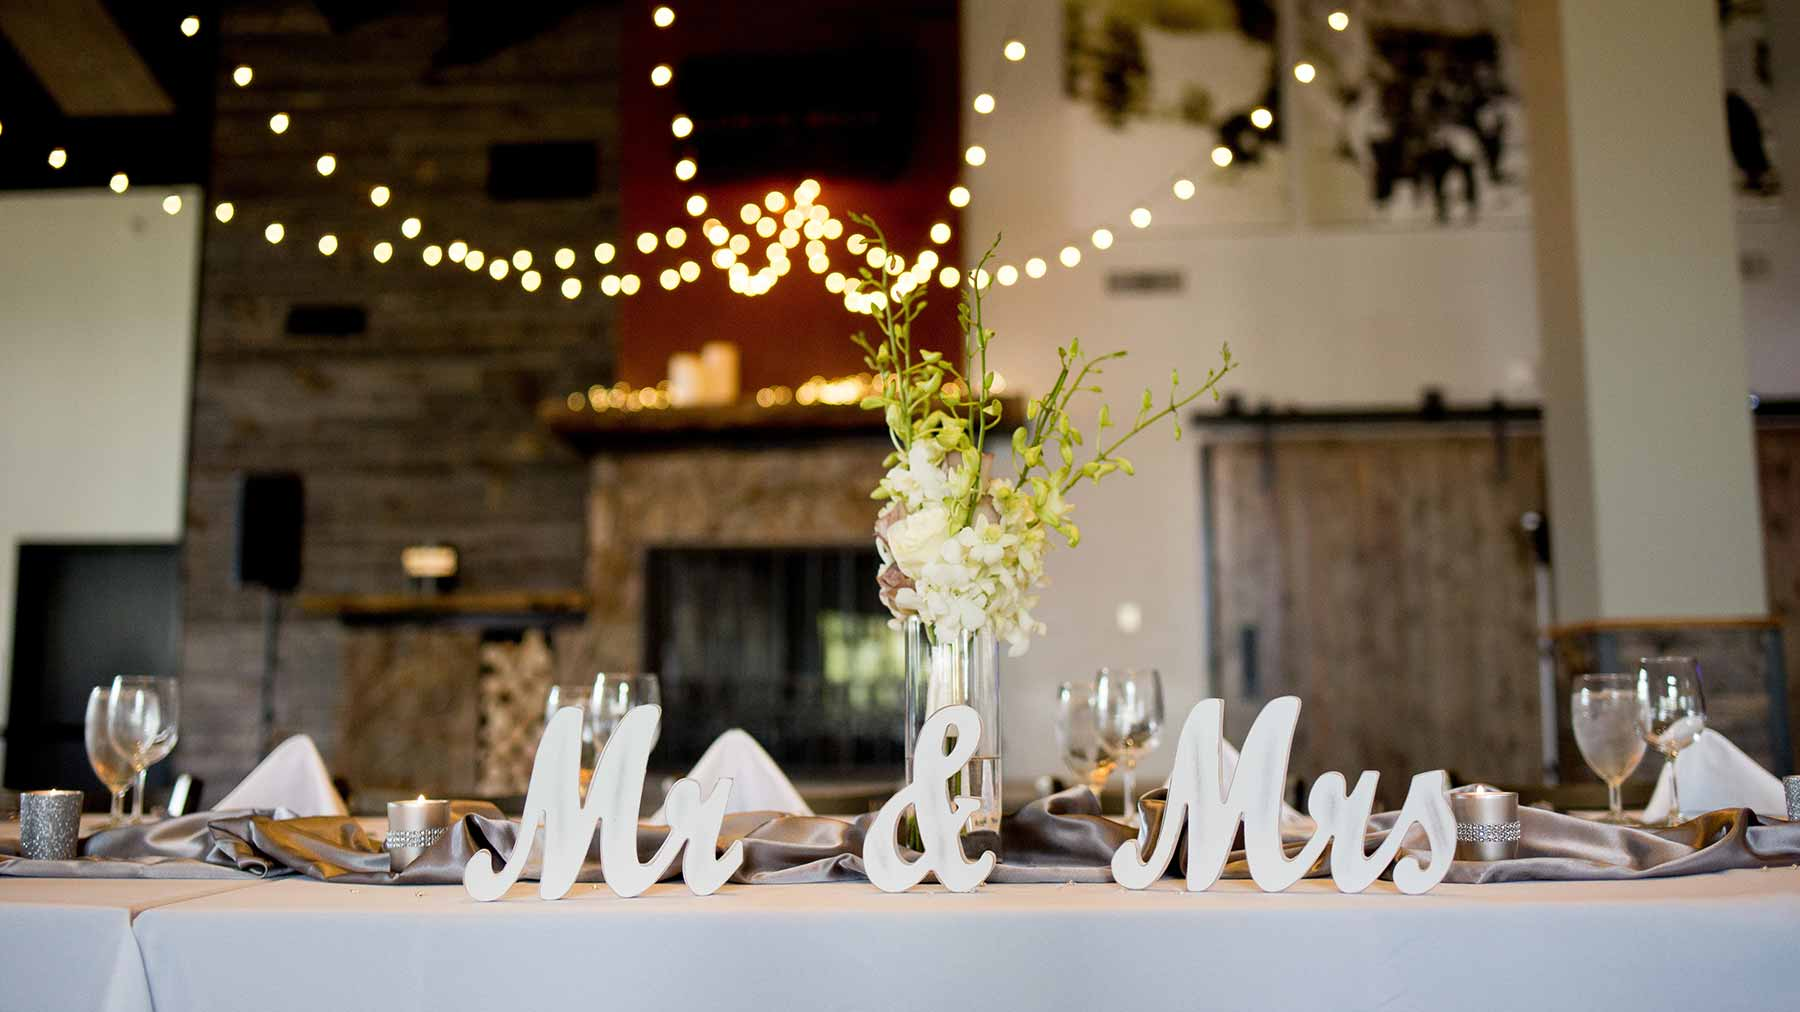 Winter Wedding Ideas And Themes Themed Reception Snowfall Cenypradufo Gallery